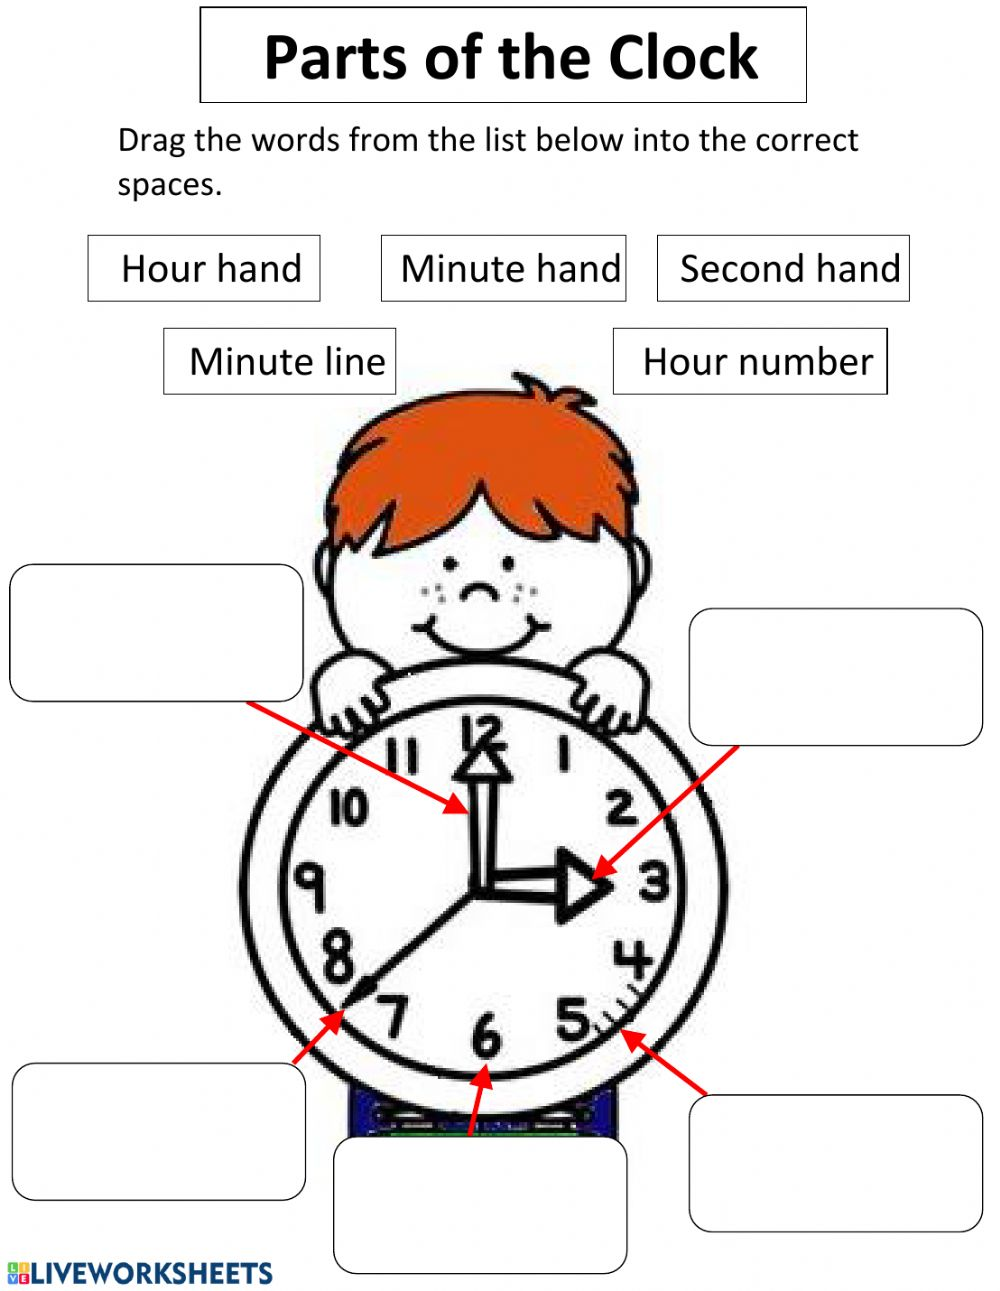 hight resolution of Parts of The Clock interactive worksheet